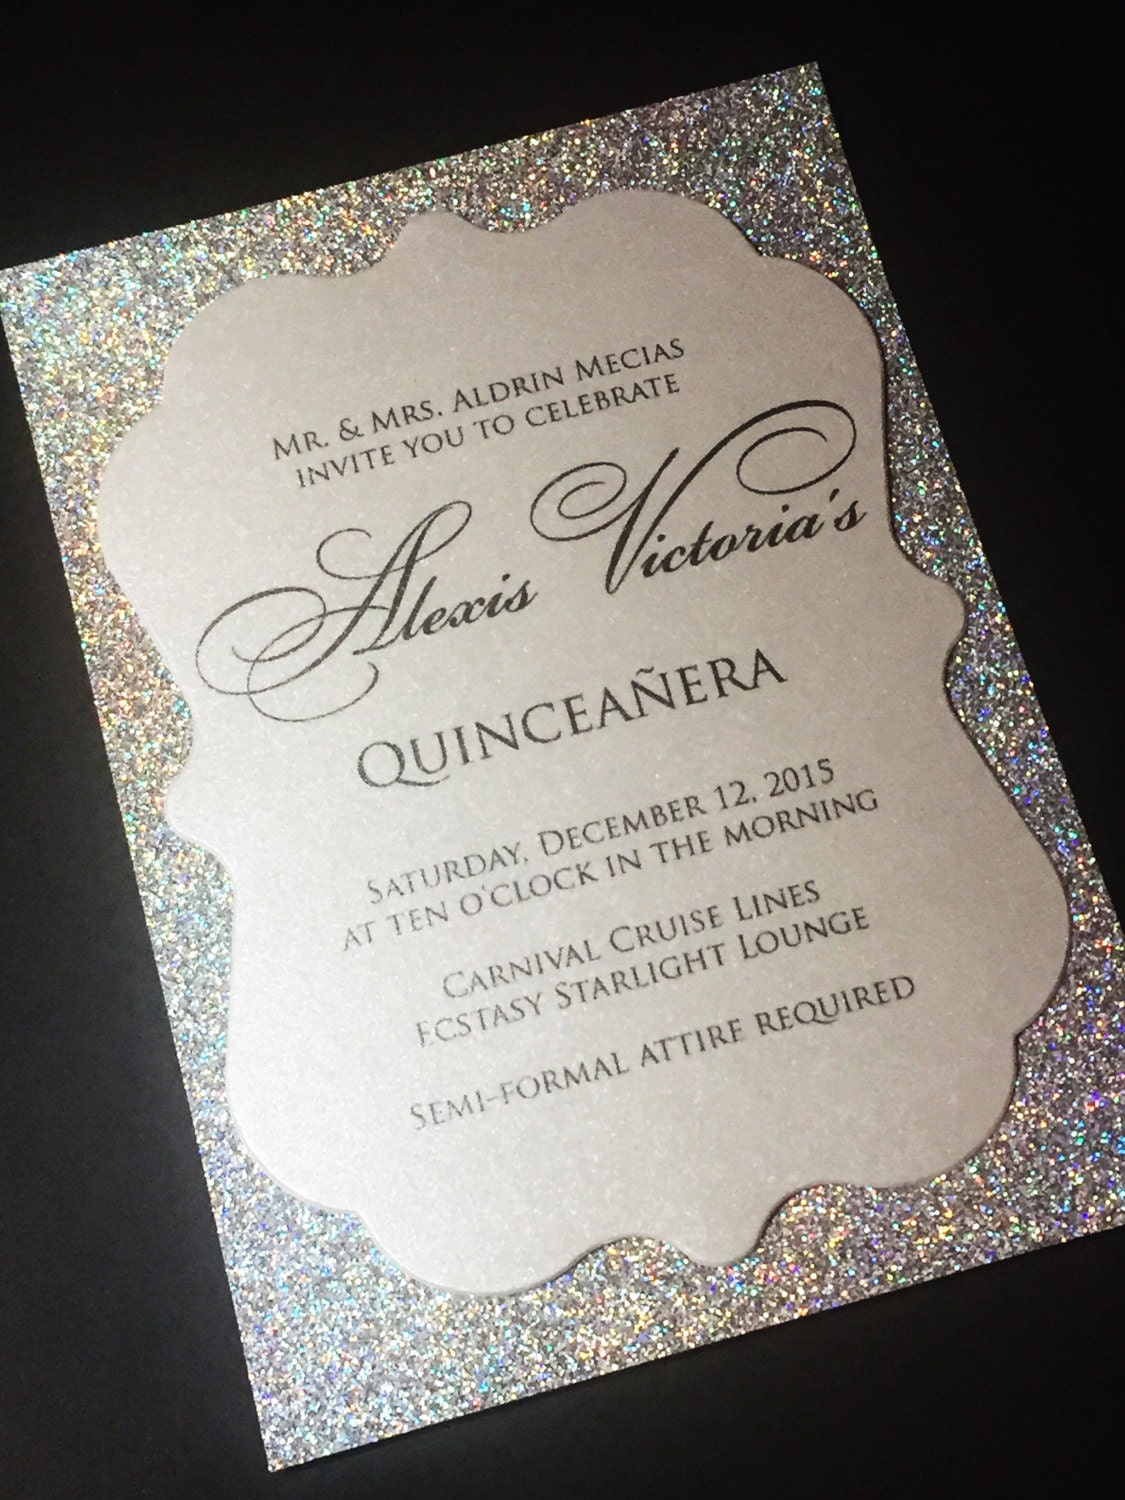 Quinceanera Invites – gangcraft.net